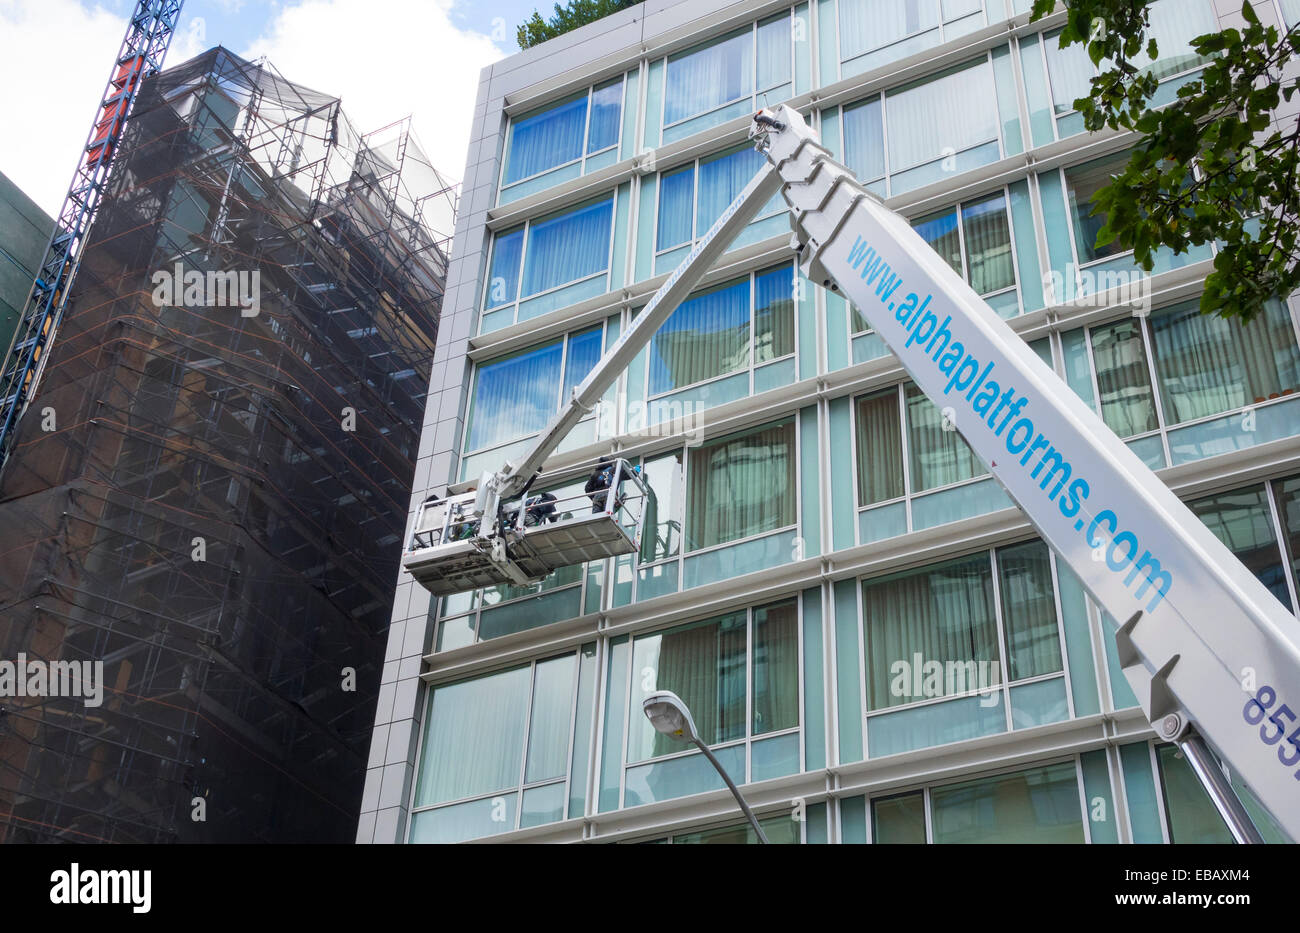 cherry picker being used for window cleaning of a modern